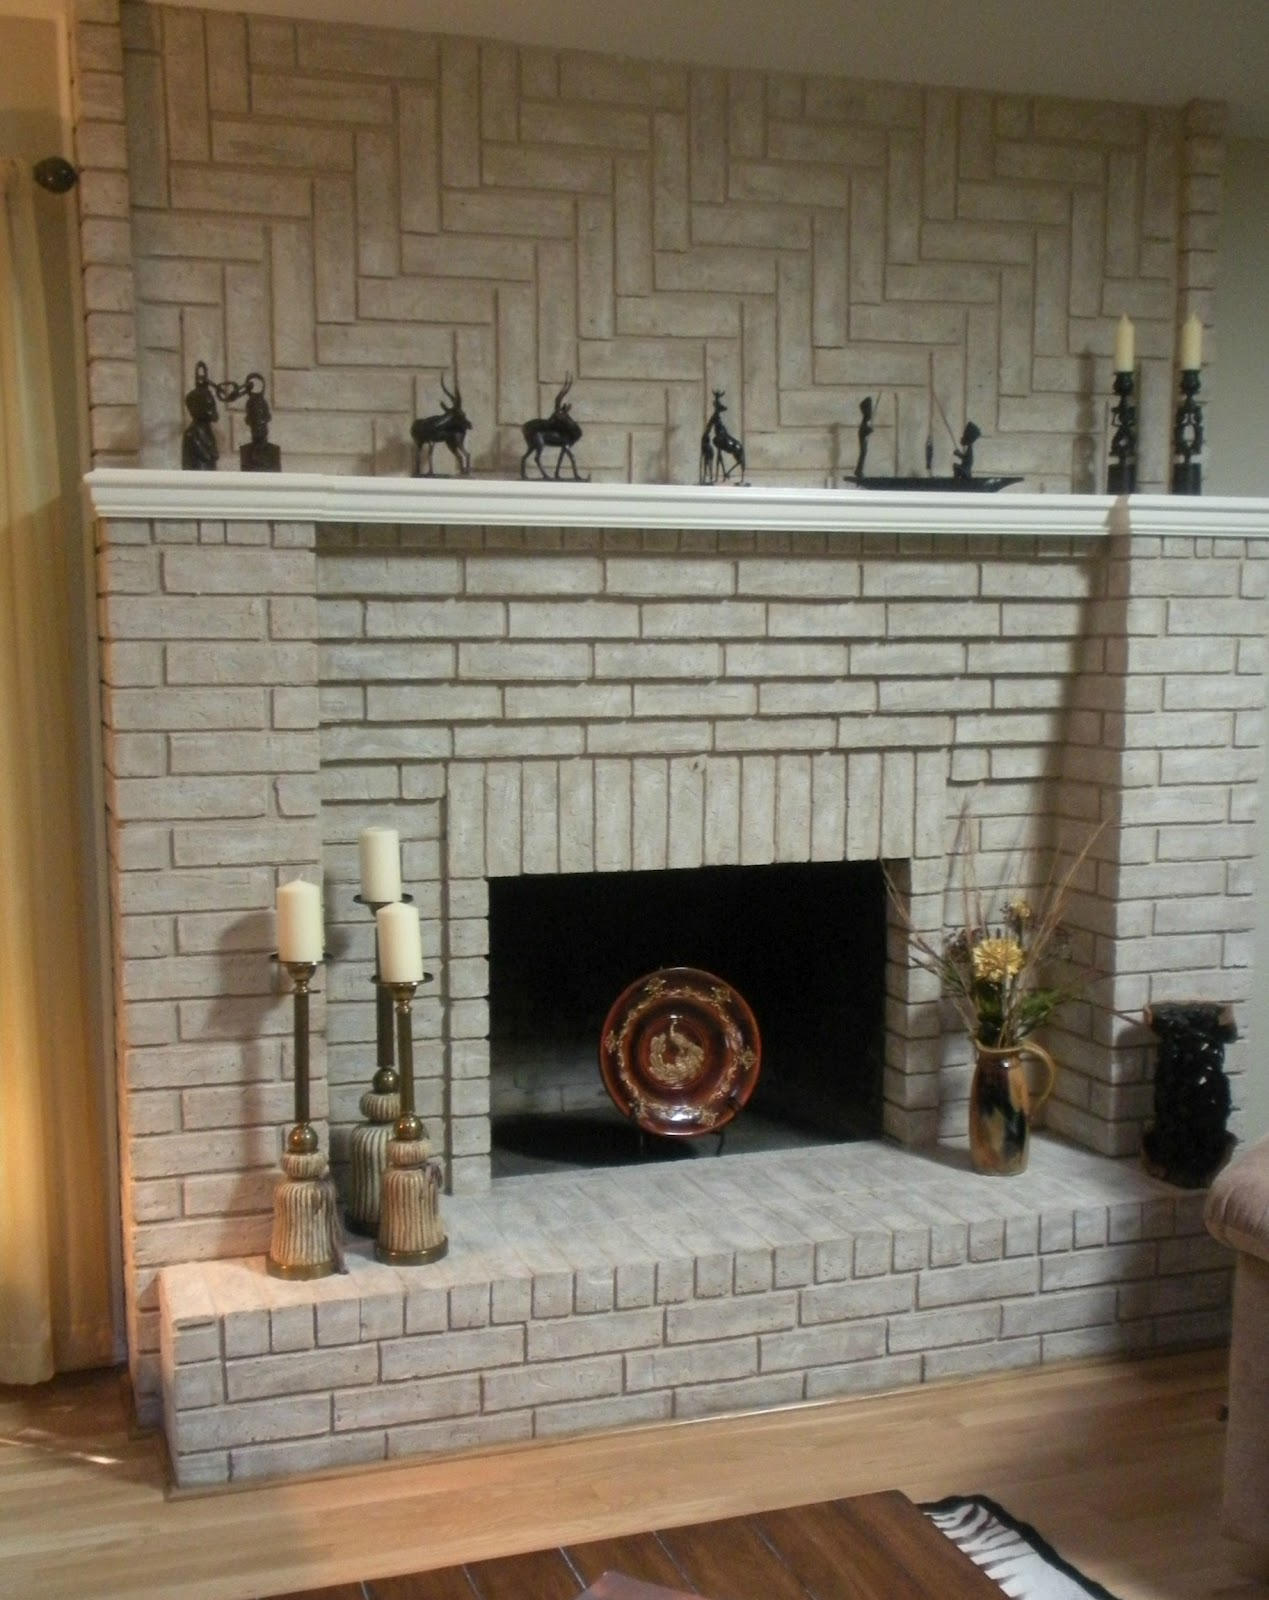 Fireplace decorating is your fireplace outdated and forgotten - Decorating ideas for fireplace walls ...